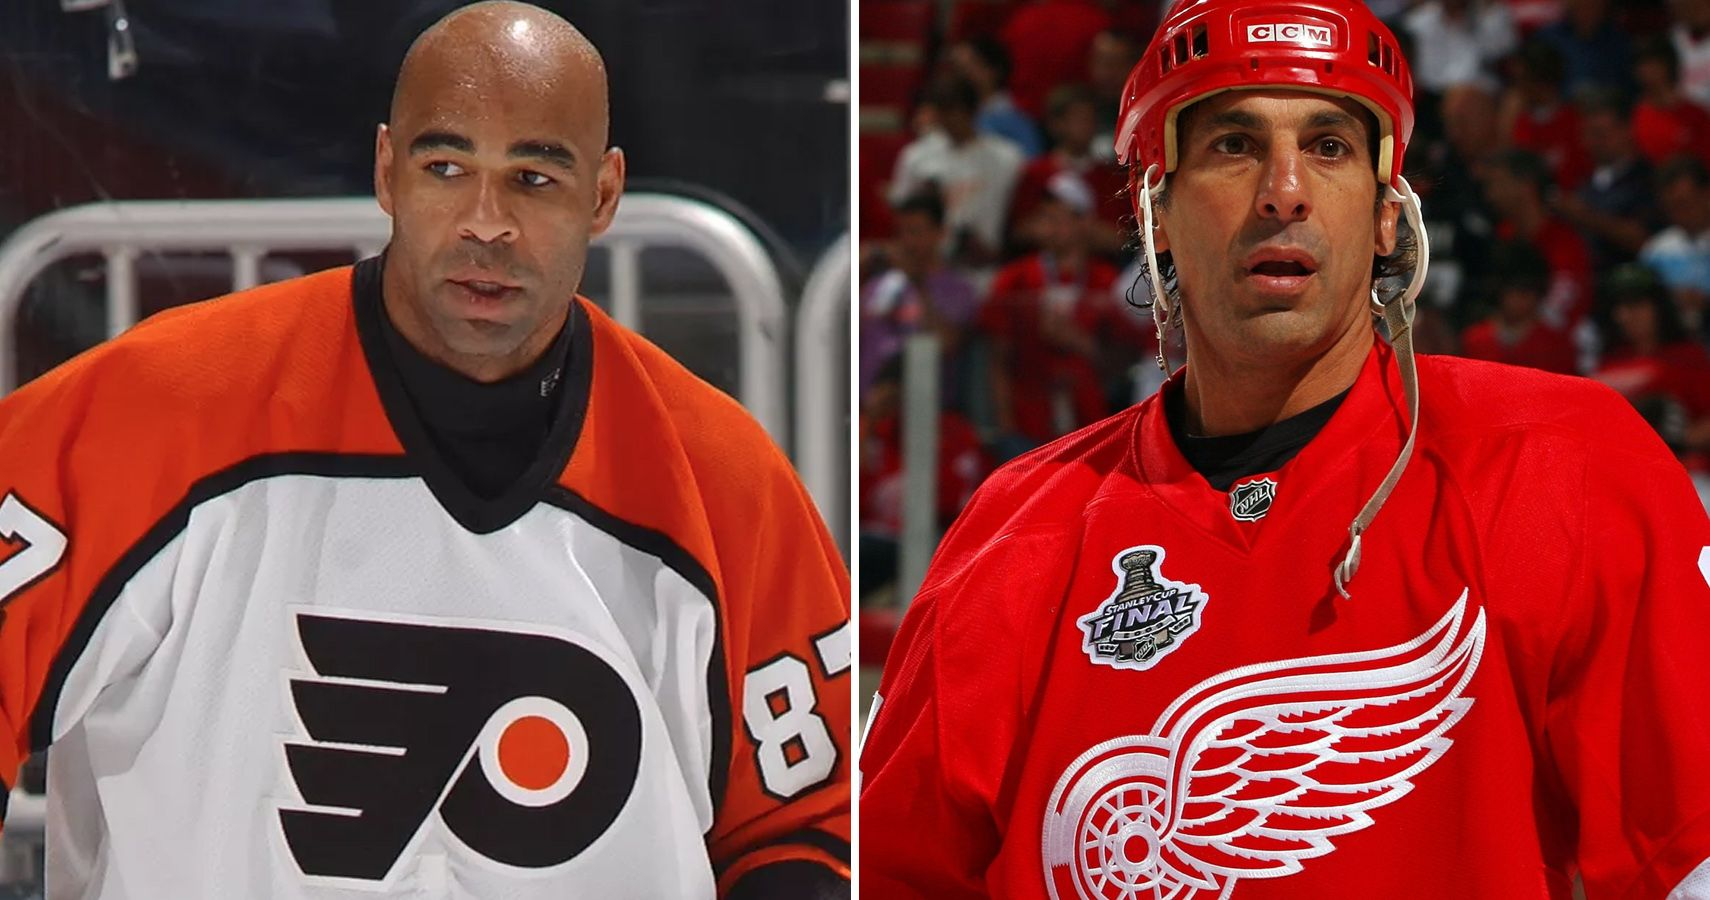 837df23e049 Ranking The 22 NHL Players With 2500 Penalty Minutes From Worst To Best